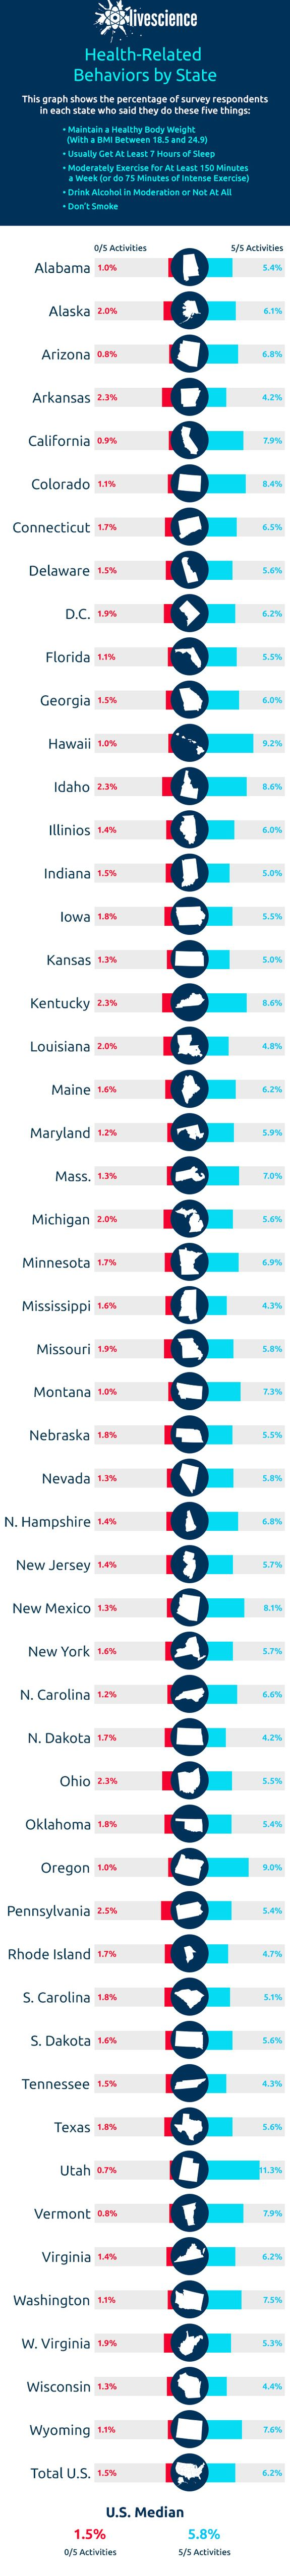 How Many Adults in Each State Engage in All 5 Key Health Habits?   Few US Adults Engage in All 5 Key Health Habits